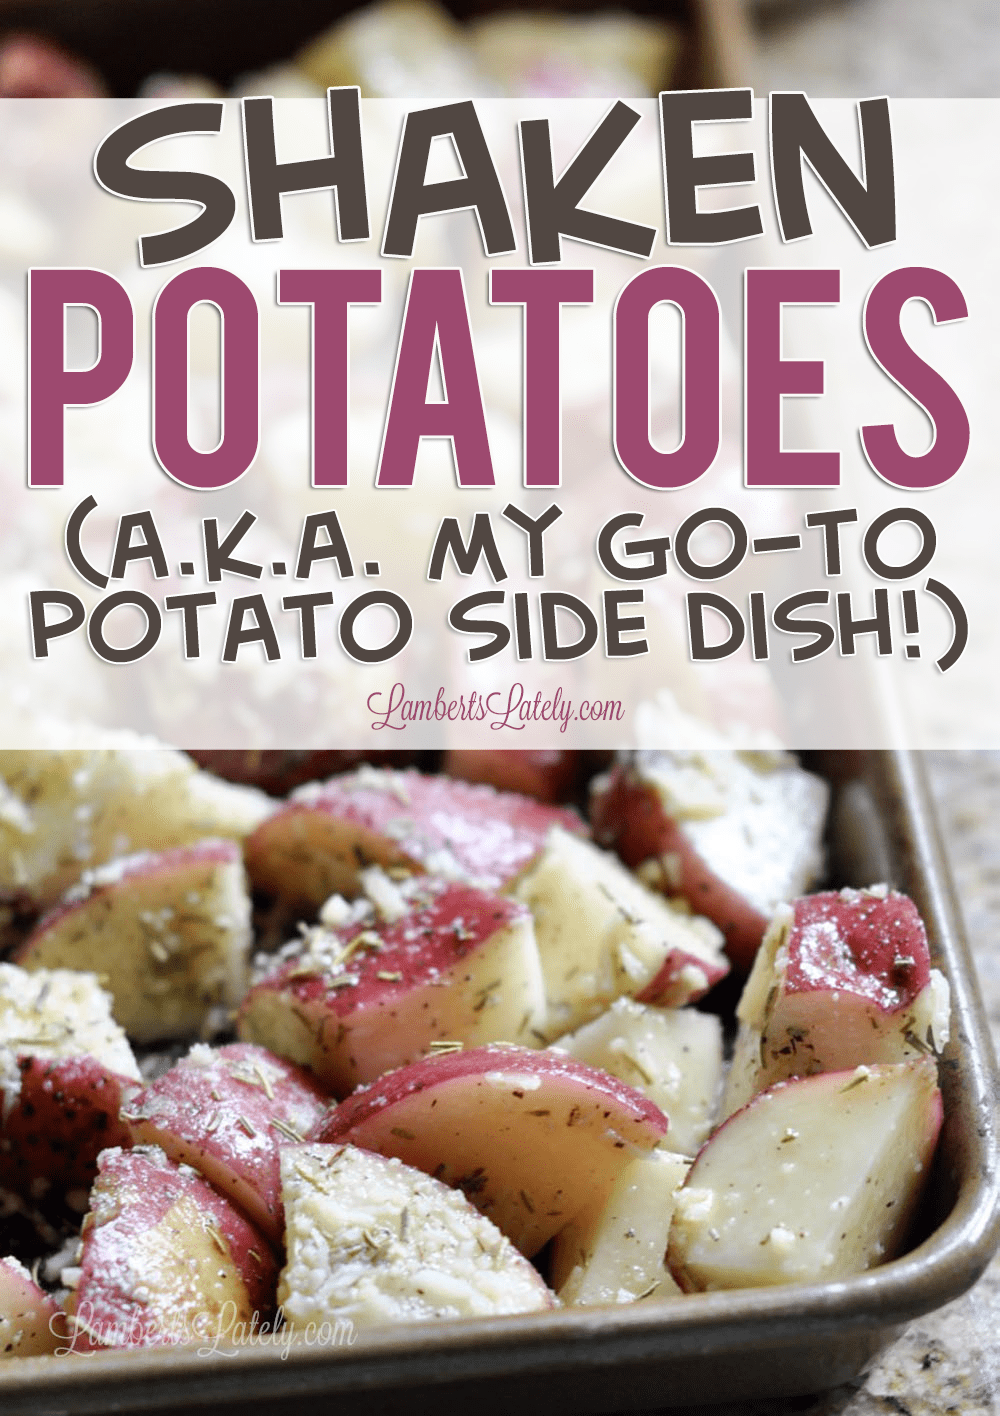 Shaken Potatoes are an easy red potato side dish that combine spices like rosemary and the cheesy richness of parmesan. These are baked/roasted in the oven and will become your favorite go-to recipe!